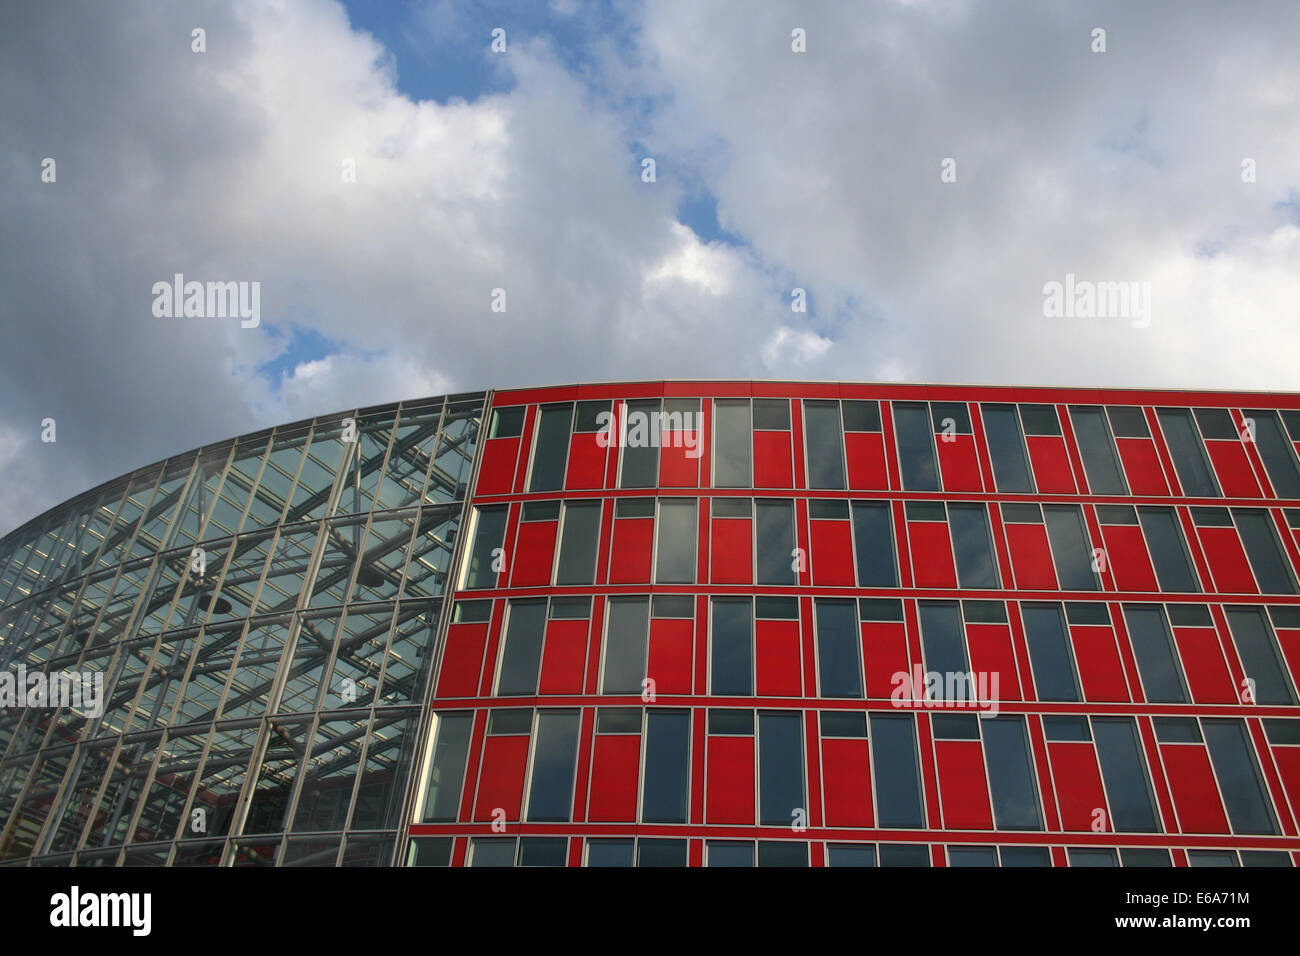 Glass Facade Of Office Building Royalty Free Stock Image: Office Building,glass Facade Stock Photo, Royalty Free